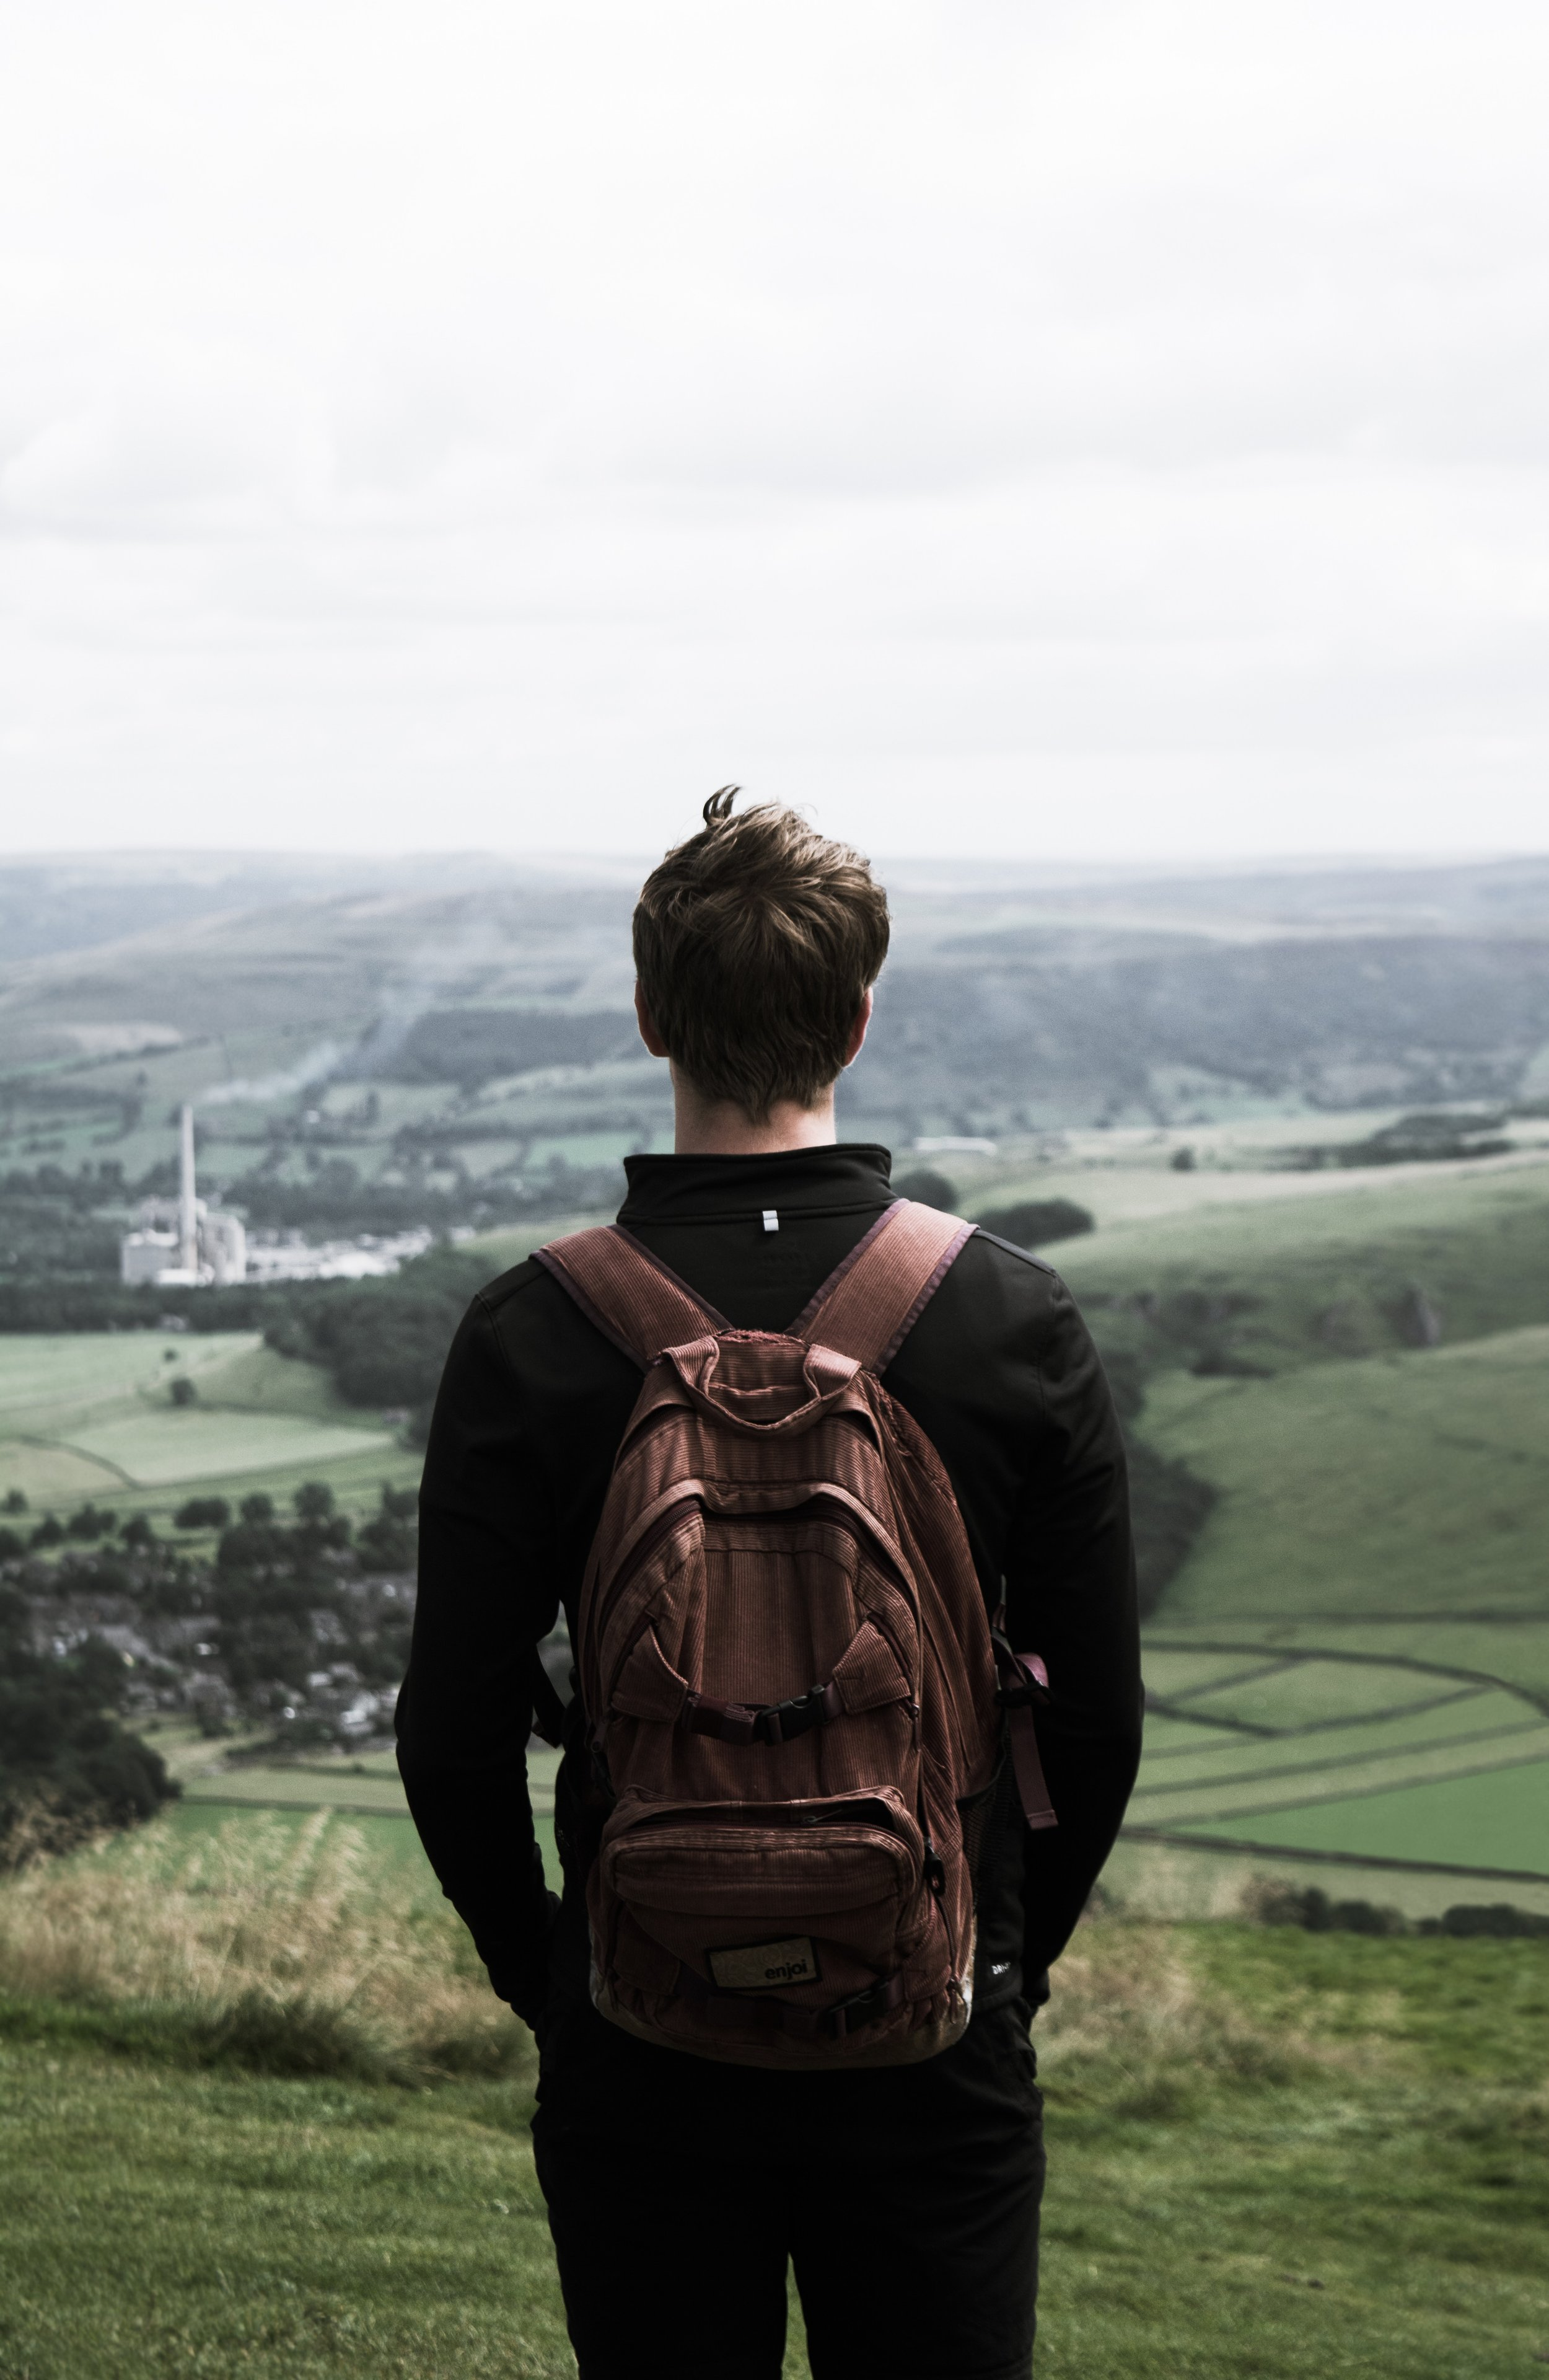 How Generation Z Will Change the World as featured on the Pulse blog